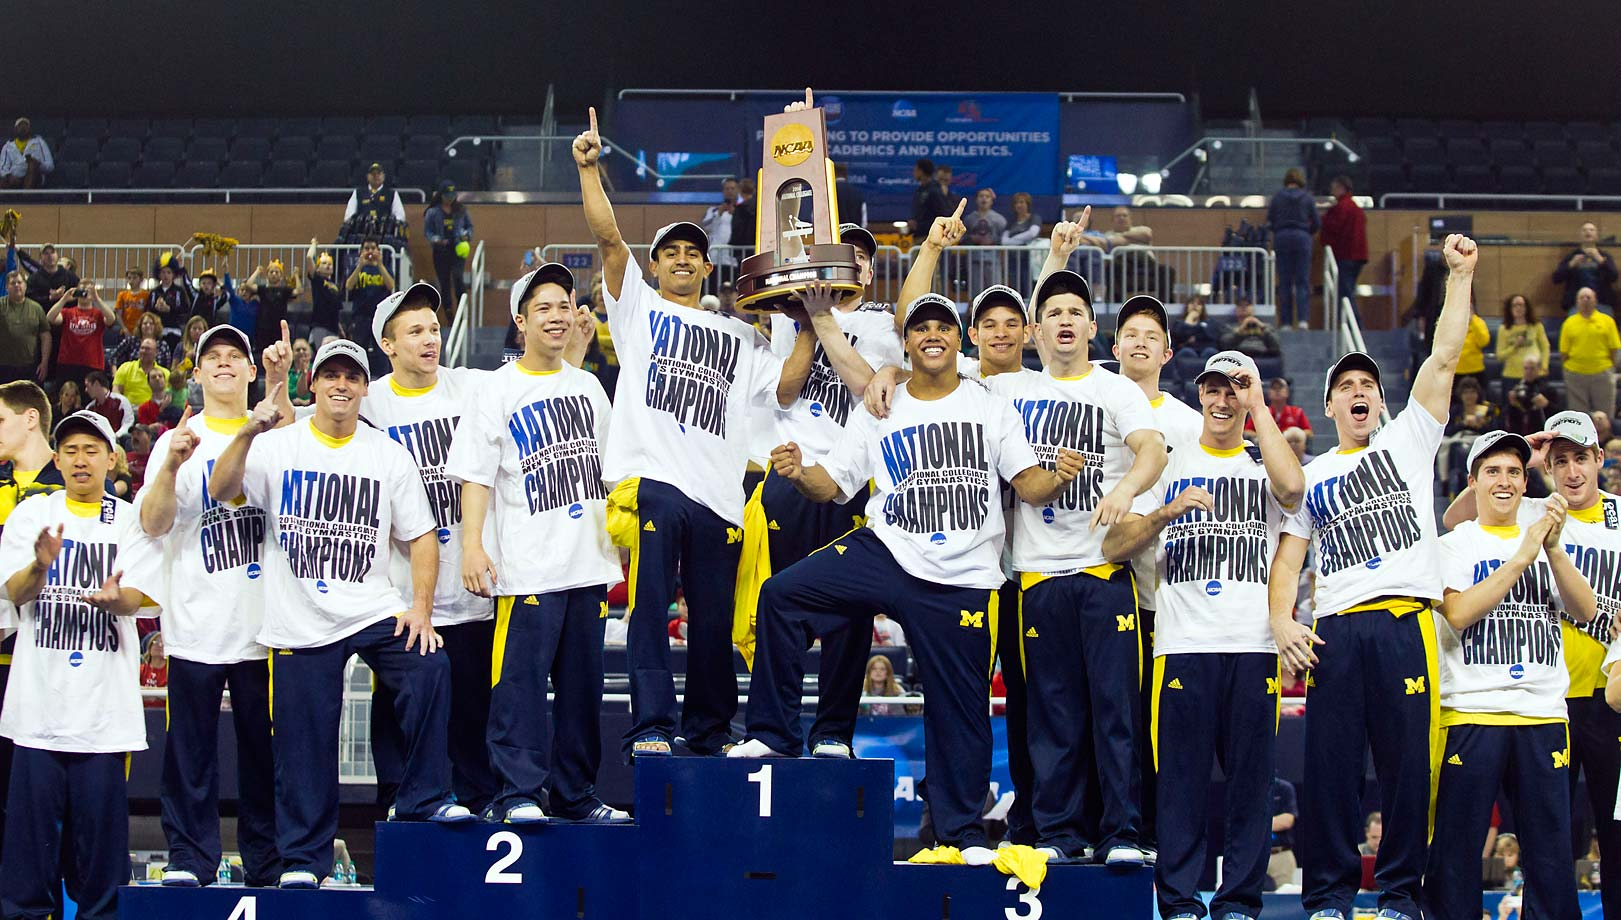 "Michigan's men's gymnastics squad poses on the podium after winning their sixth national title.  In their self-proclaimed ""Golden Era"", Michigan's men's gymnastics team has been dominant, as evidenced by their successful title defense (they won the title last year too)."